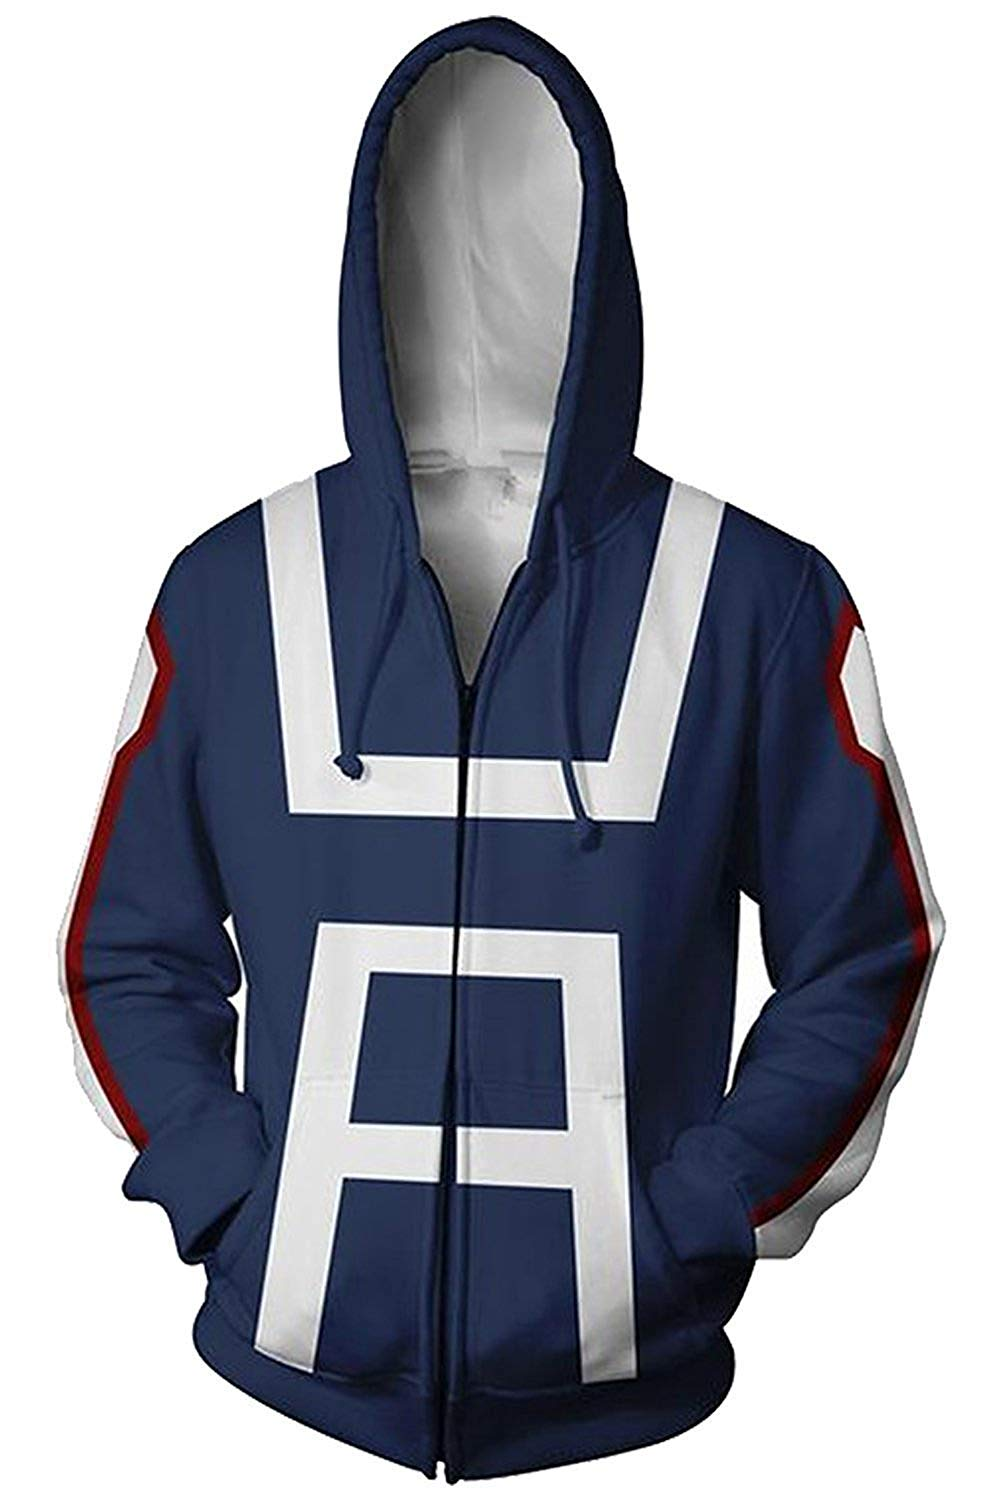 Boku No Hero Academia My Hero Academia Hoodie - Blue - Aesthetic Cosplay, LLC